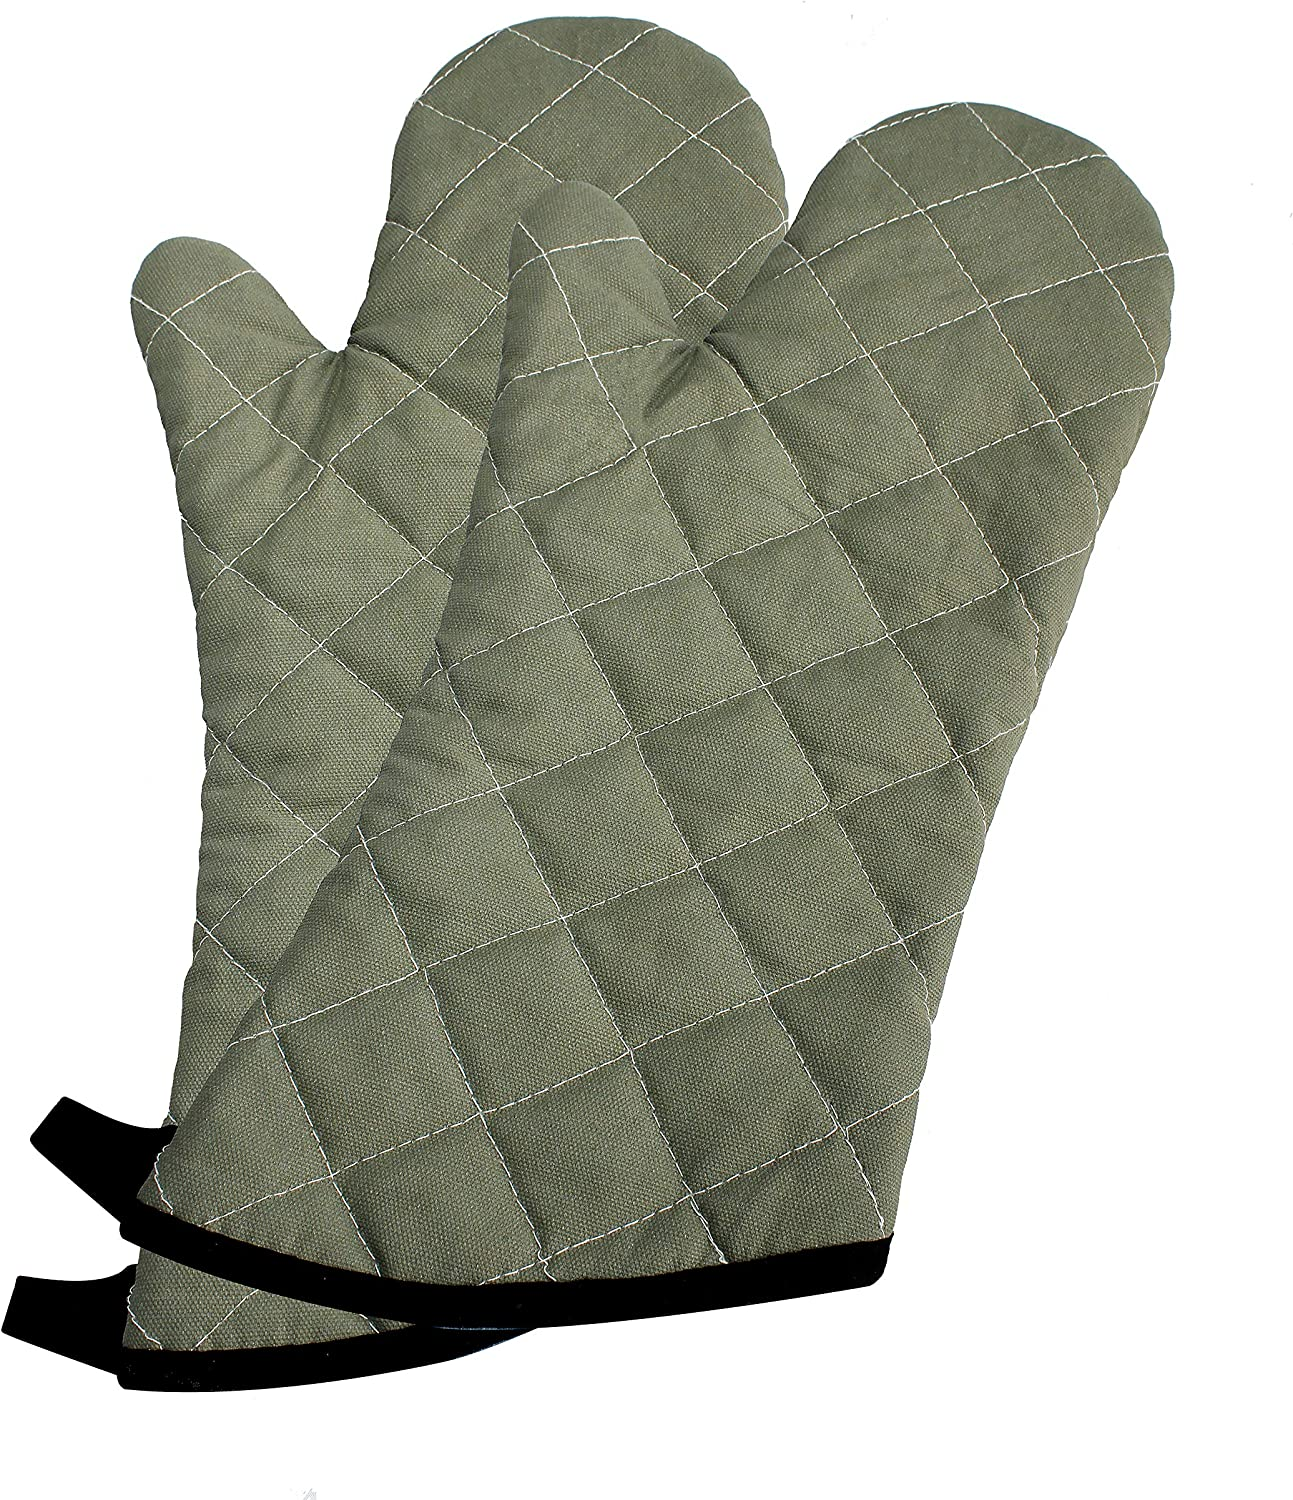 "ARCLIBER Oven Mitts 1 Pair of 15"" Long Quilted Cotton Lining - Heat Resistant Kitchen Gloves,Flame Retardant Mitts,Green 2 Pack"